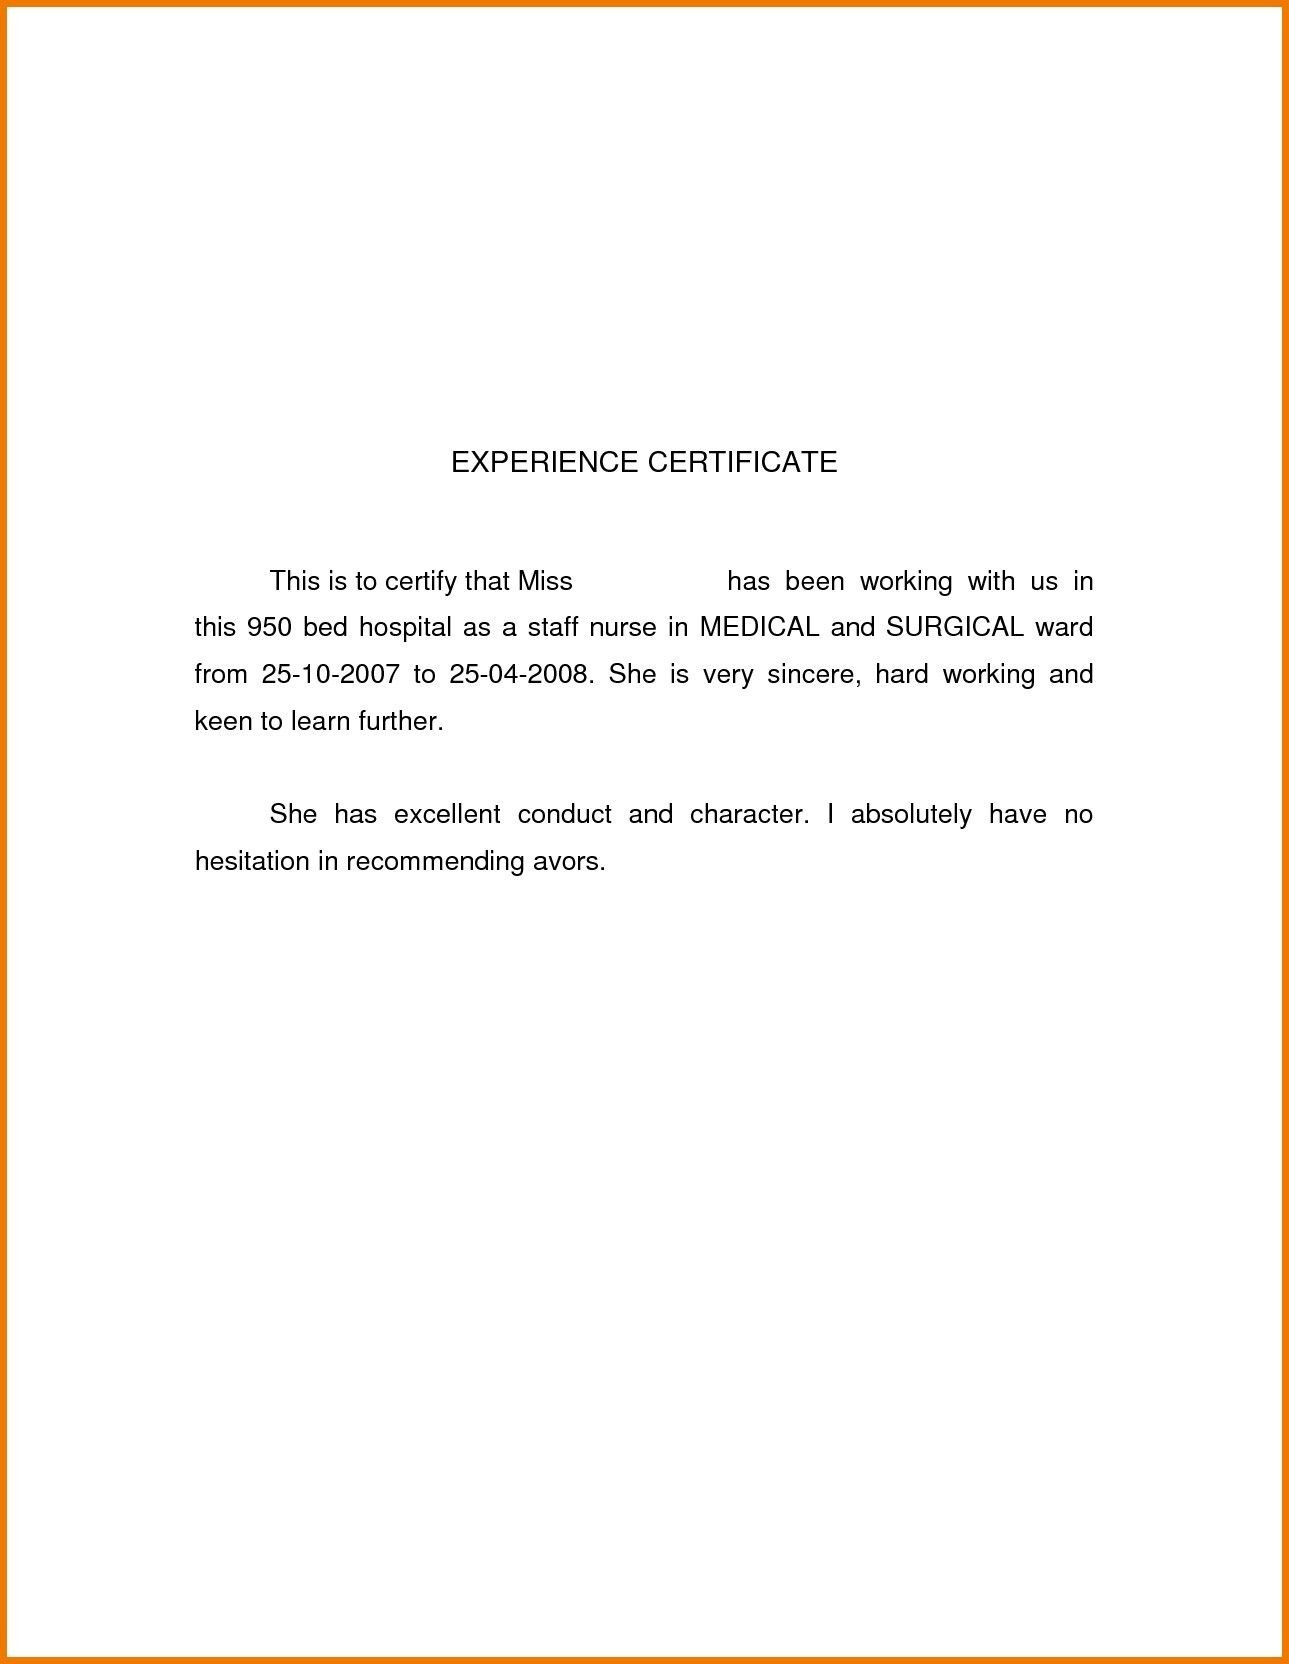 Save Hotel Work Experience Certificate Sle New How To No